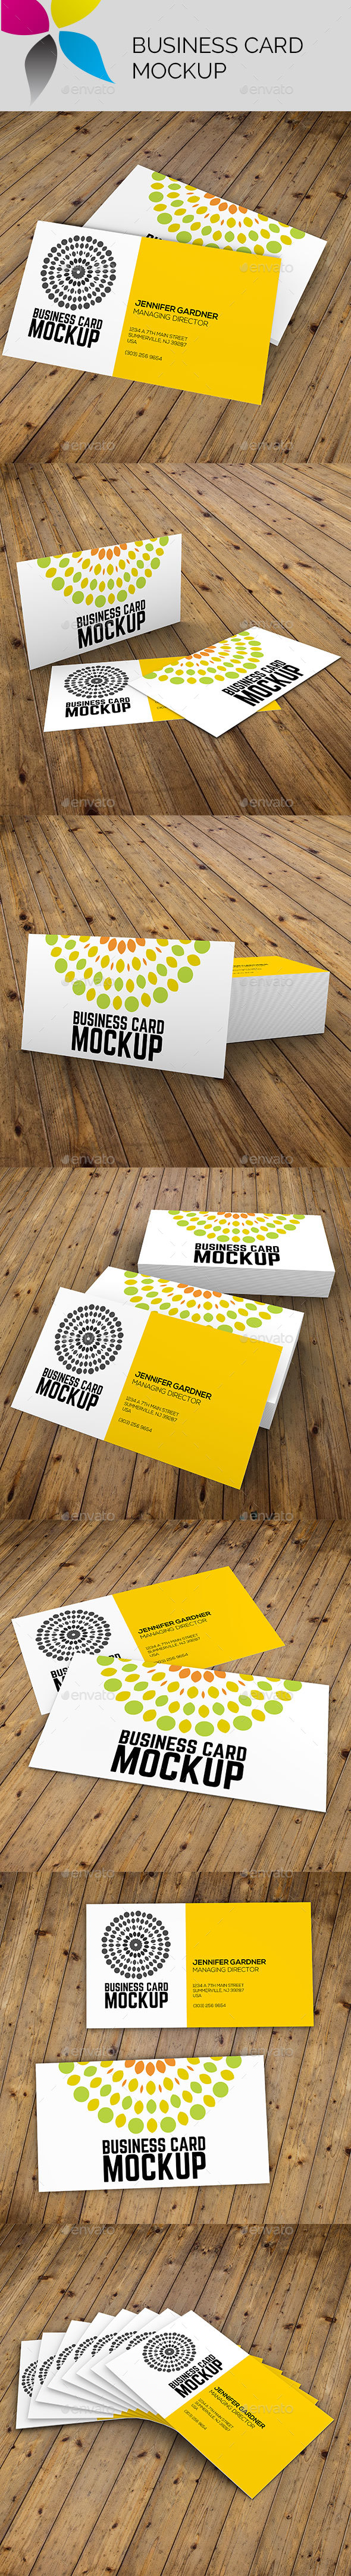 Business Card Mockup - Business Cards Print